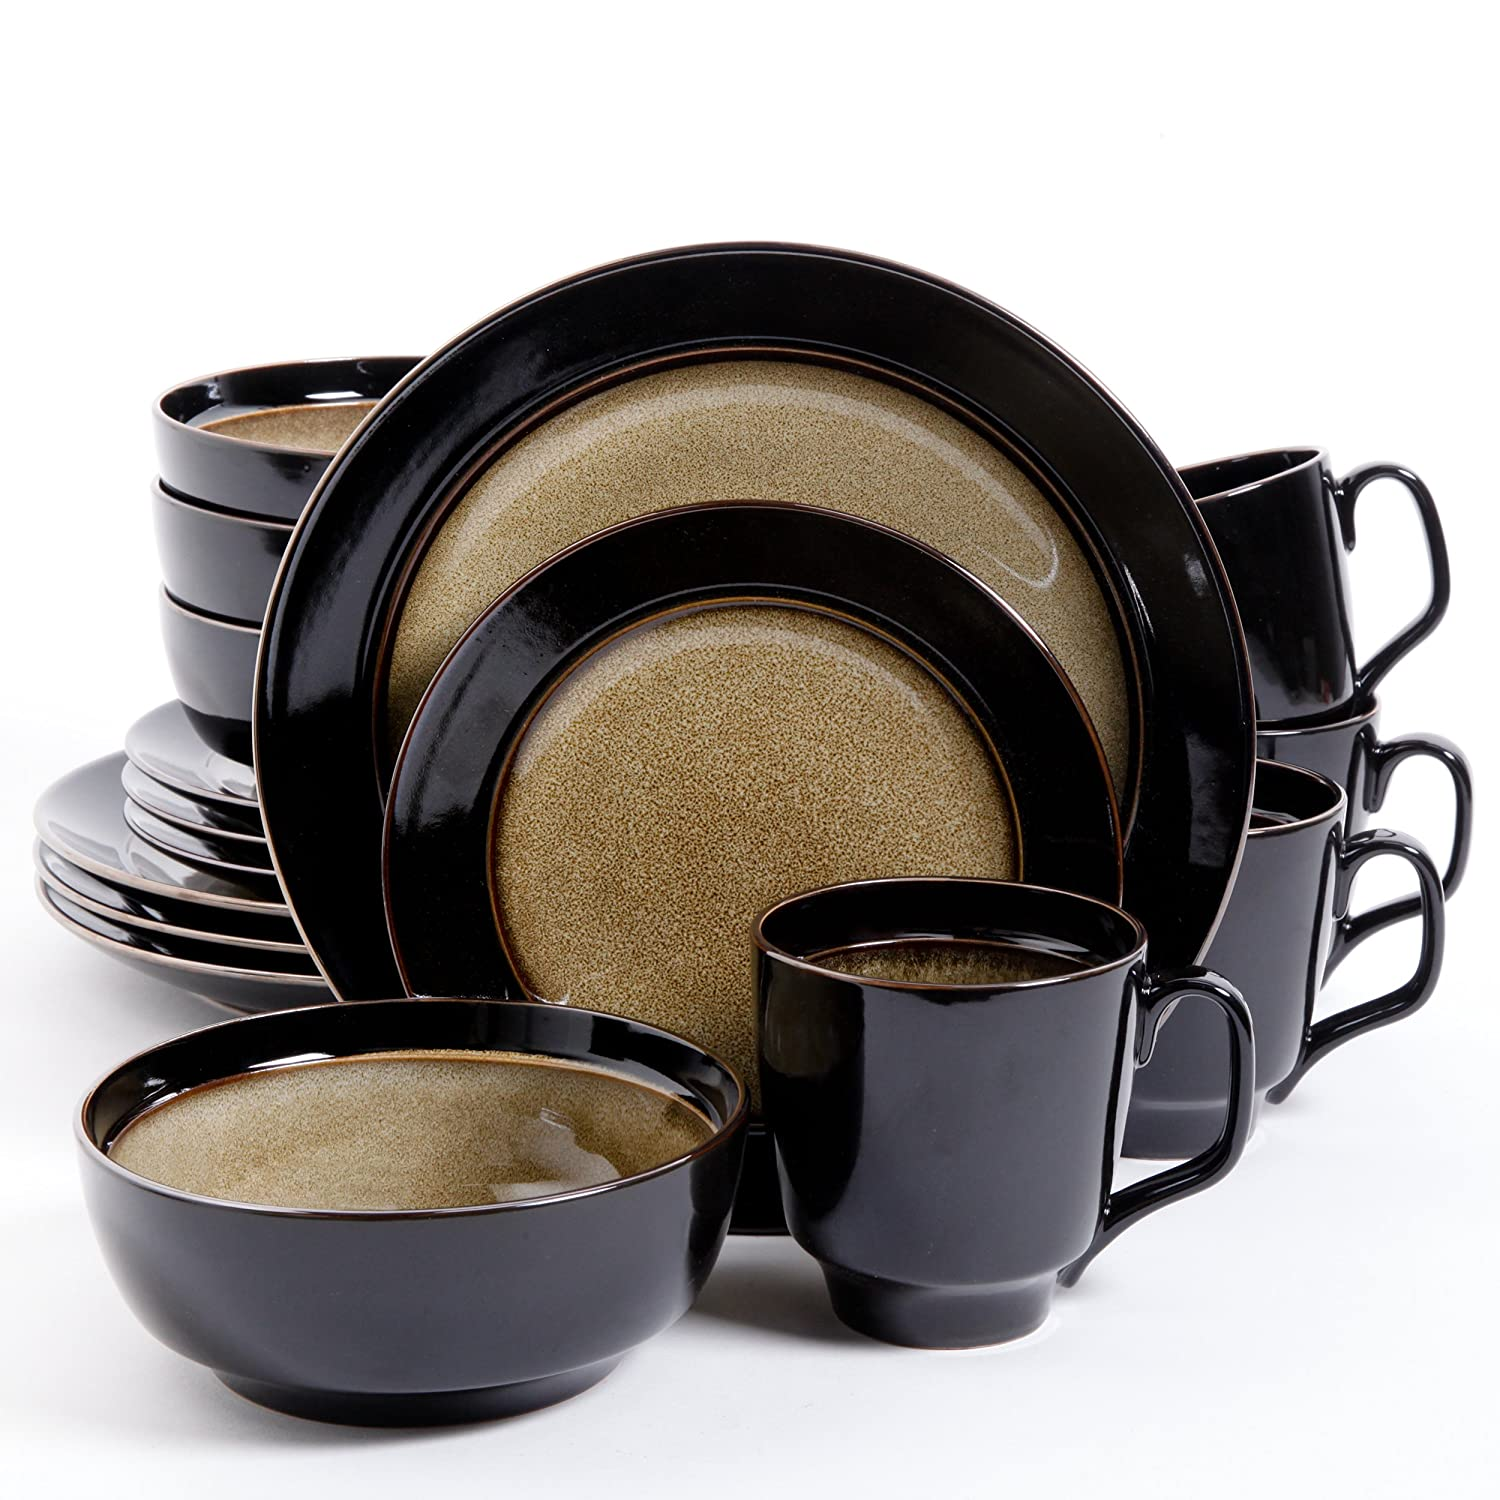 Amazon.com | Gibson Bella Galleria 16 Piece Dinnerware Set Taupe/Black Dinnerware Sets  sc 1 st  Amazon.com & Amazon.com | Gibson Bella Galleria 16 Piece Dinnerware Set Taupe ...